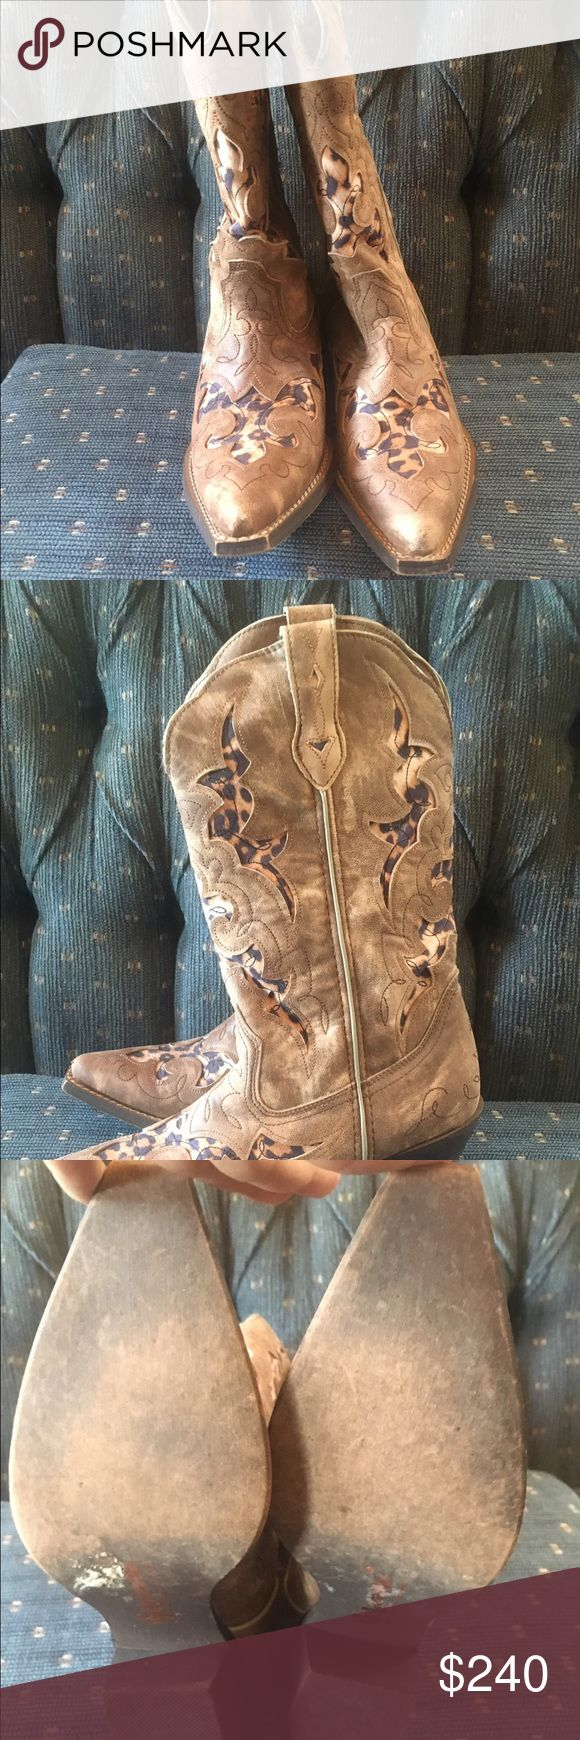 Cheetah Laredo cowboy boots worn once! Paid nearly 300 for these. Worn once to a Luke Bryan concert. Laredo stamp on bottom still intact. Laredo Shoes Heeled Boots